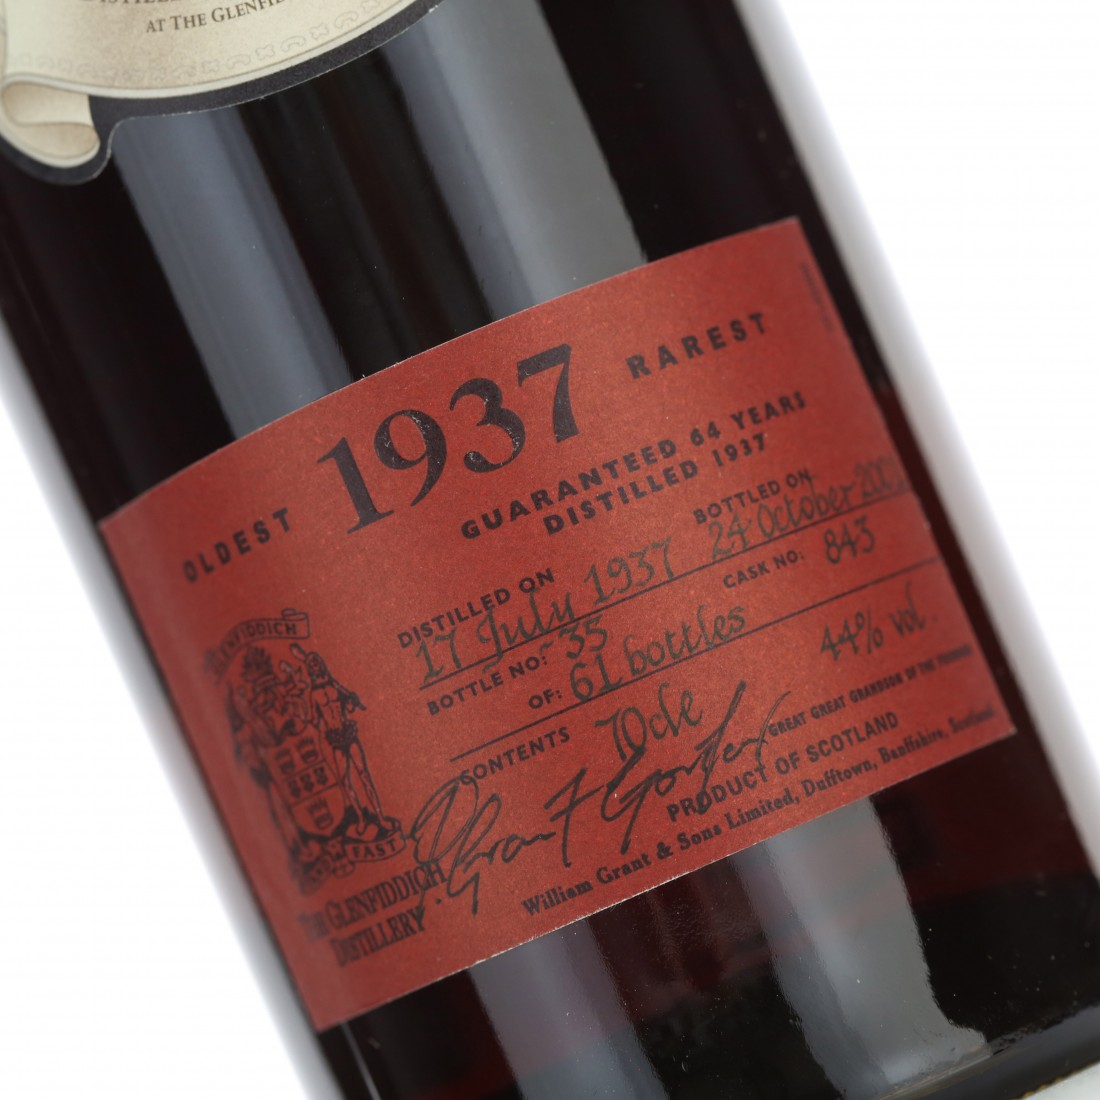 Glenfiddich 1937 Rare Collection 64 Year Old